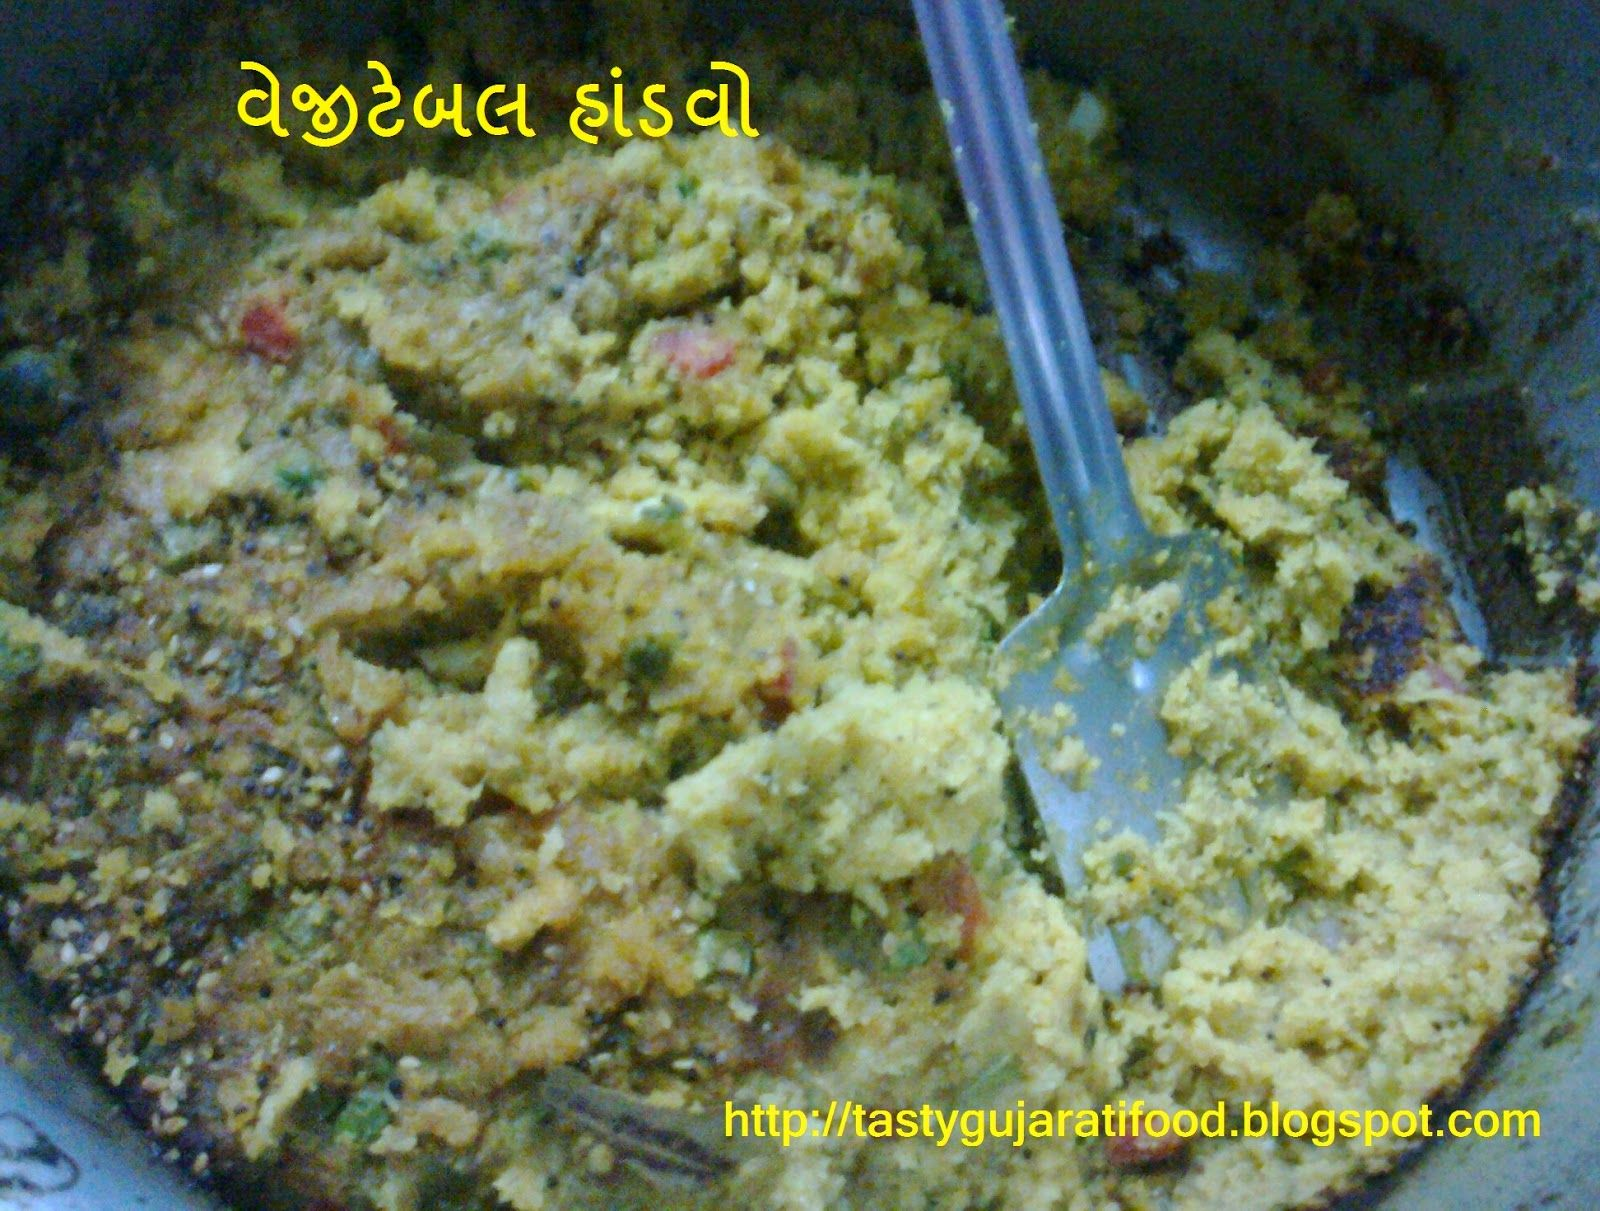 Vegetable handvo recipe in gujarati language make handvo with full vegetable handvo recipe in gujarati language make handvo with full of different vegetables forumfinder Choice Image